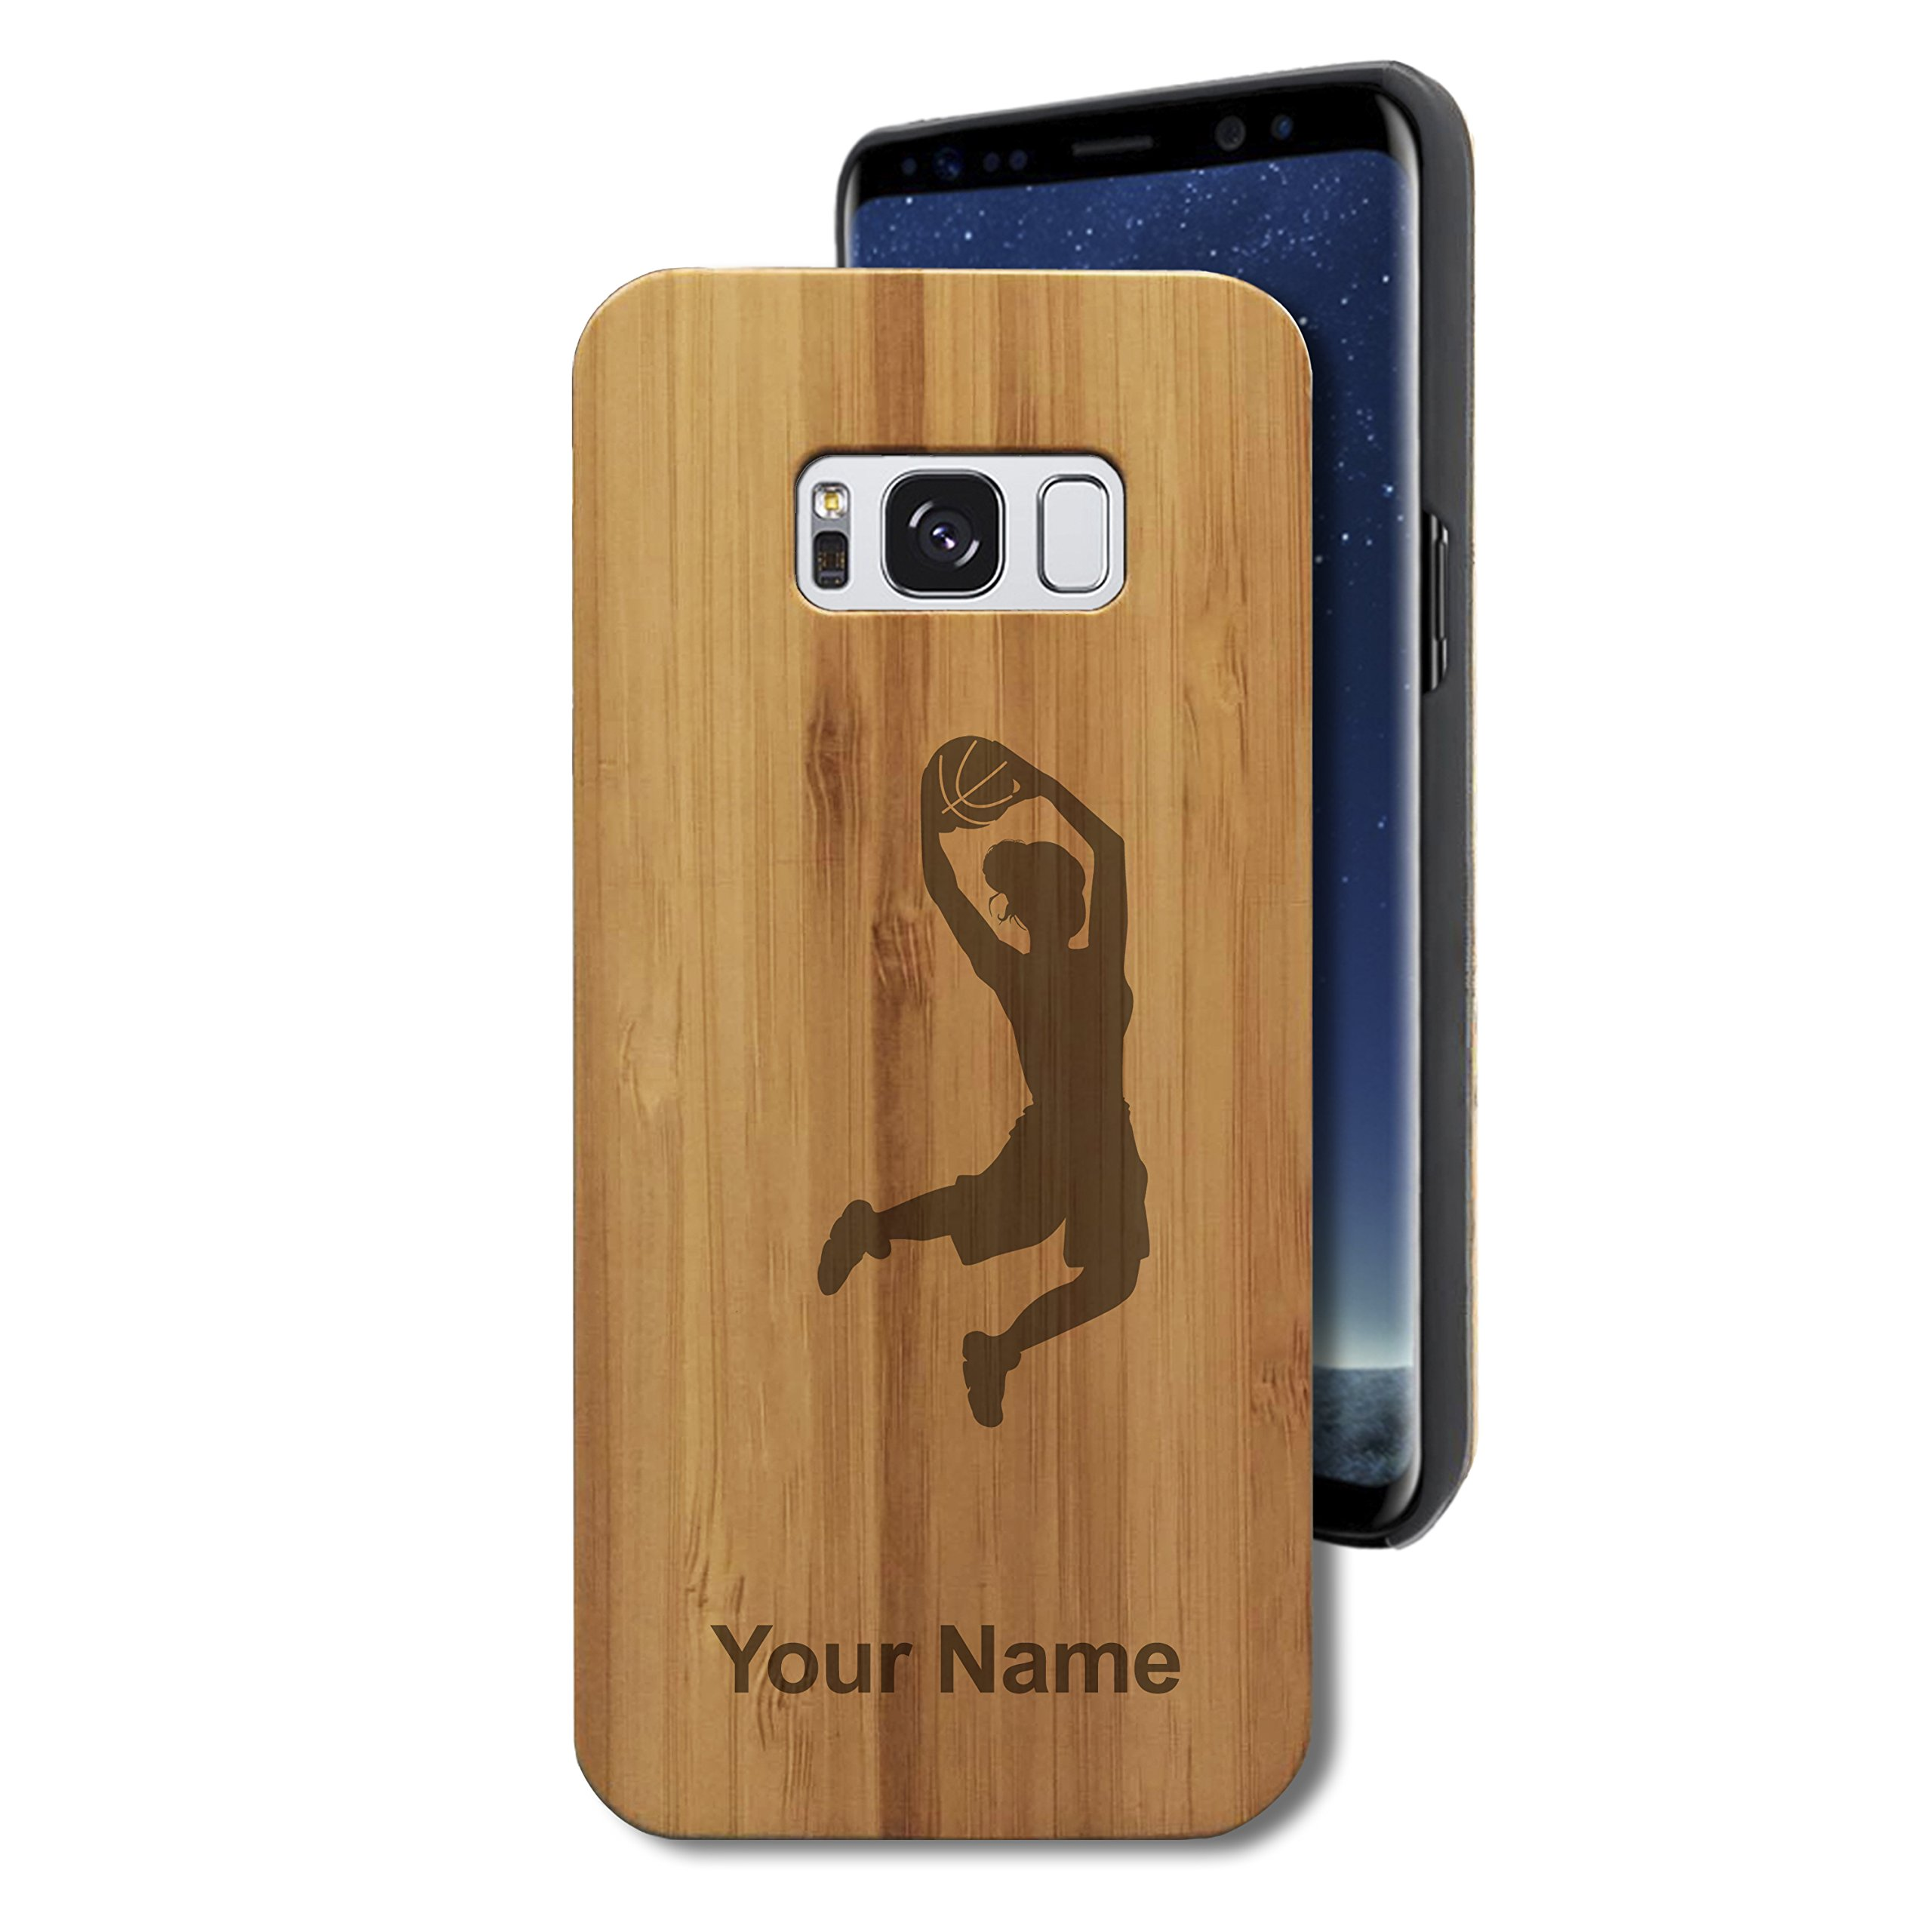 Bamboo Case for Galaxy S8+ PLUS - Basketball Slam Dunk Woman - Personalized Engraving Included